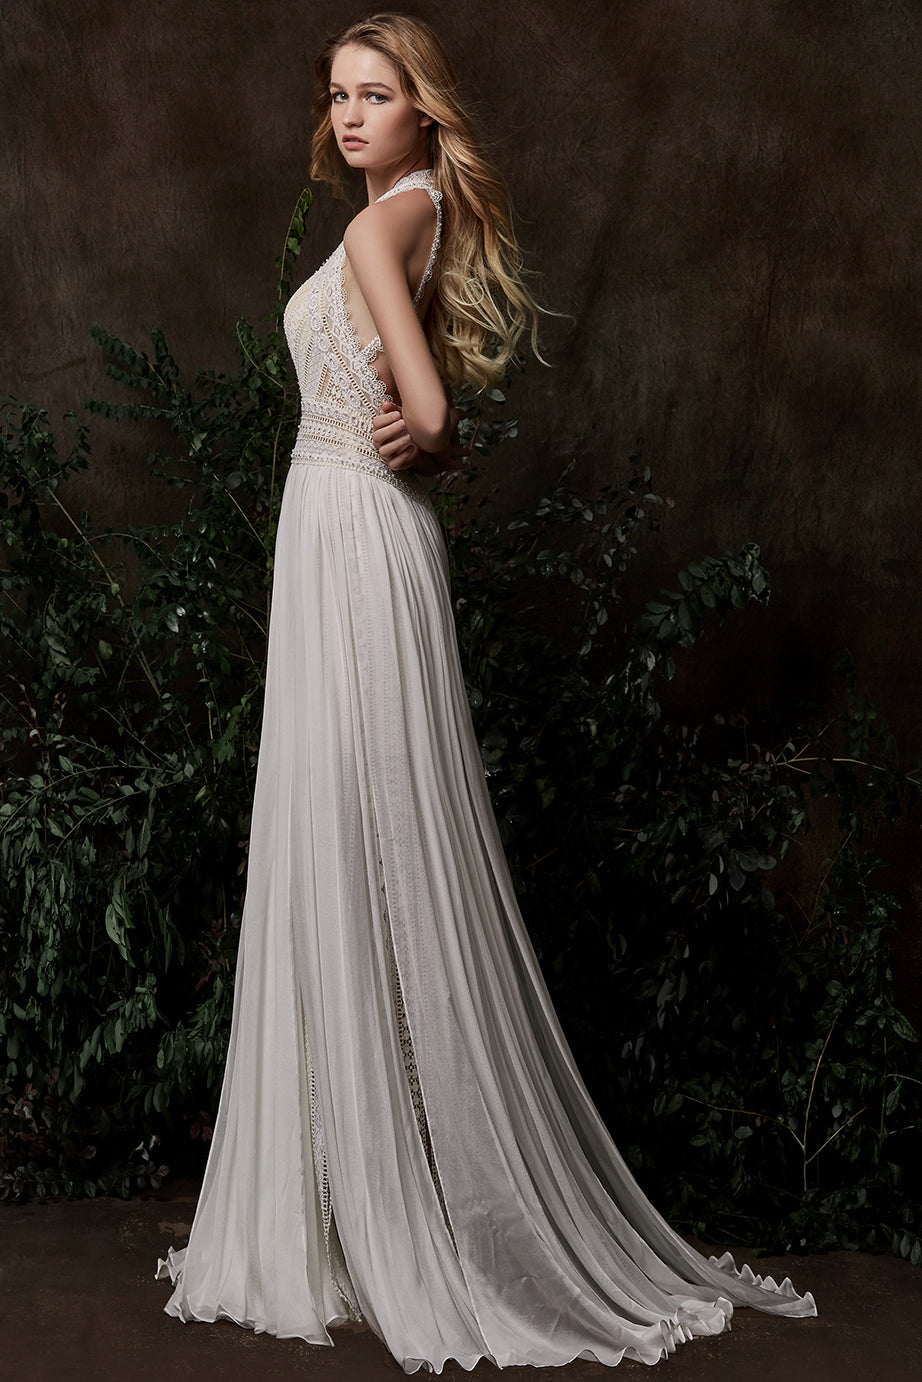 Blossom - Gown - Chic Nostalgia - Eternal Bridal